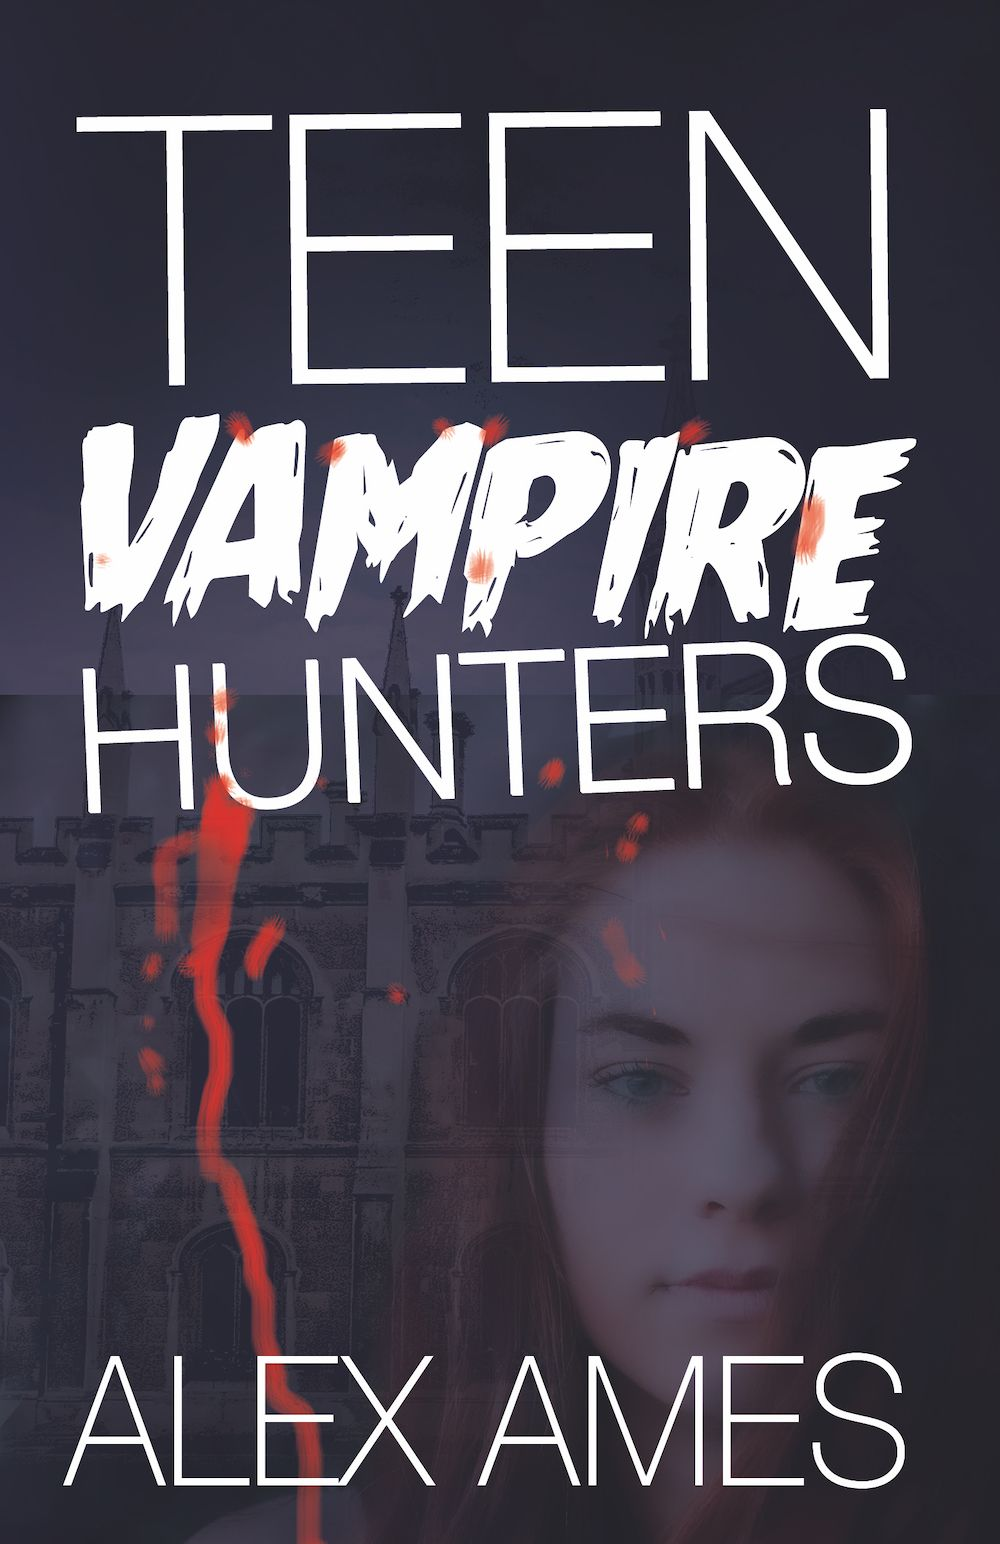 Teen Vampire Hunters Alex Ames